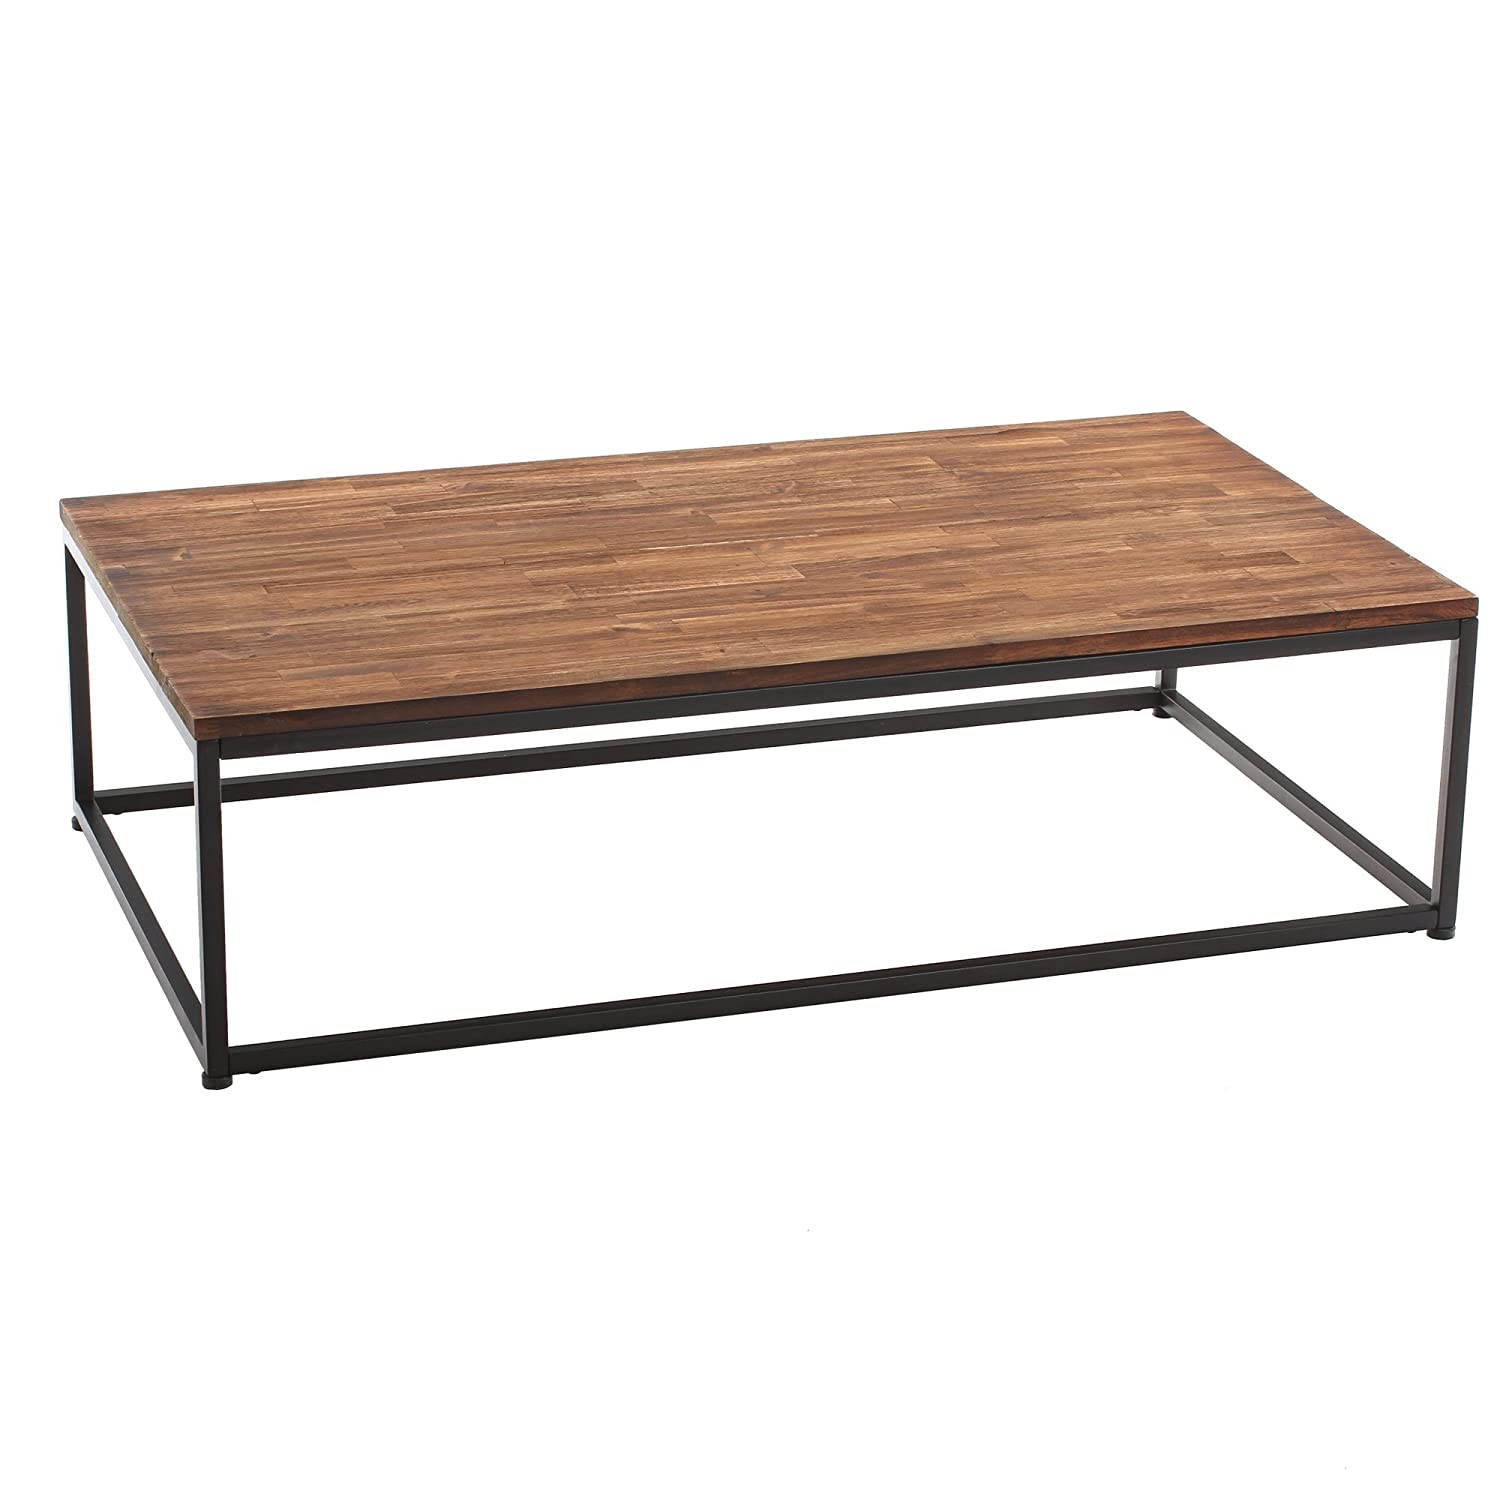 Marvelous table basse fer et bois 13 table basse de - Table basse de salon en bois ...